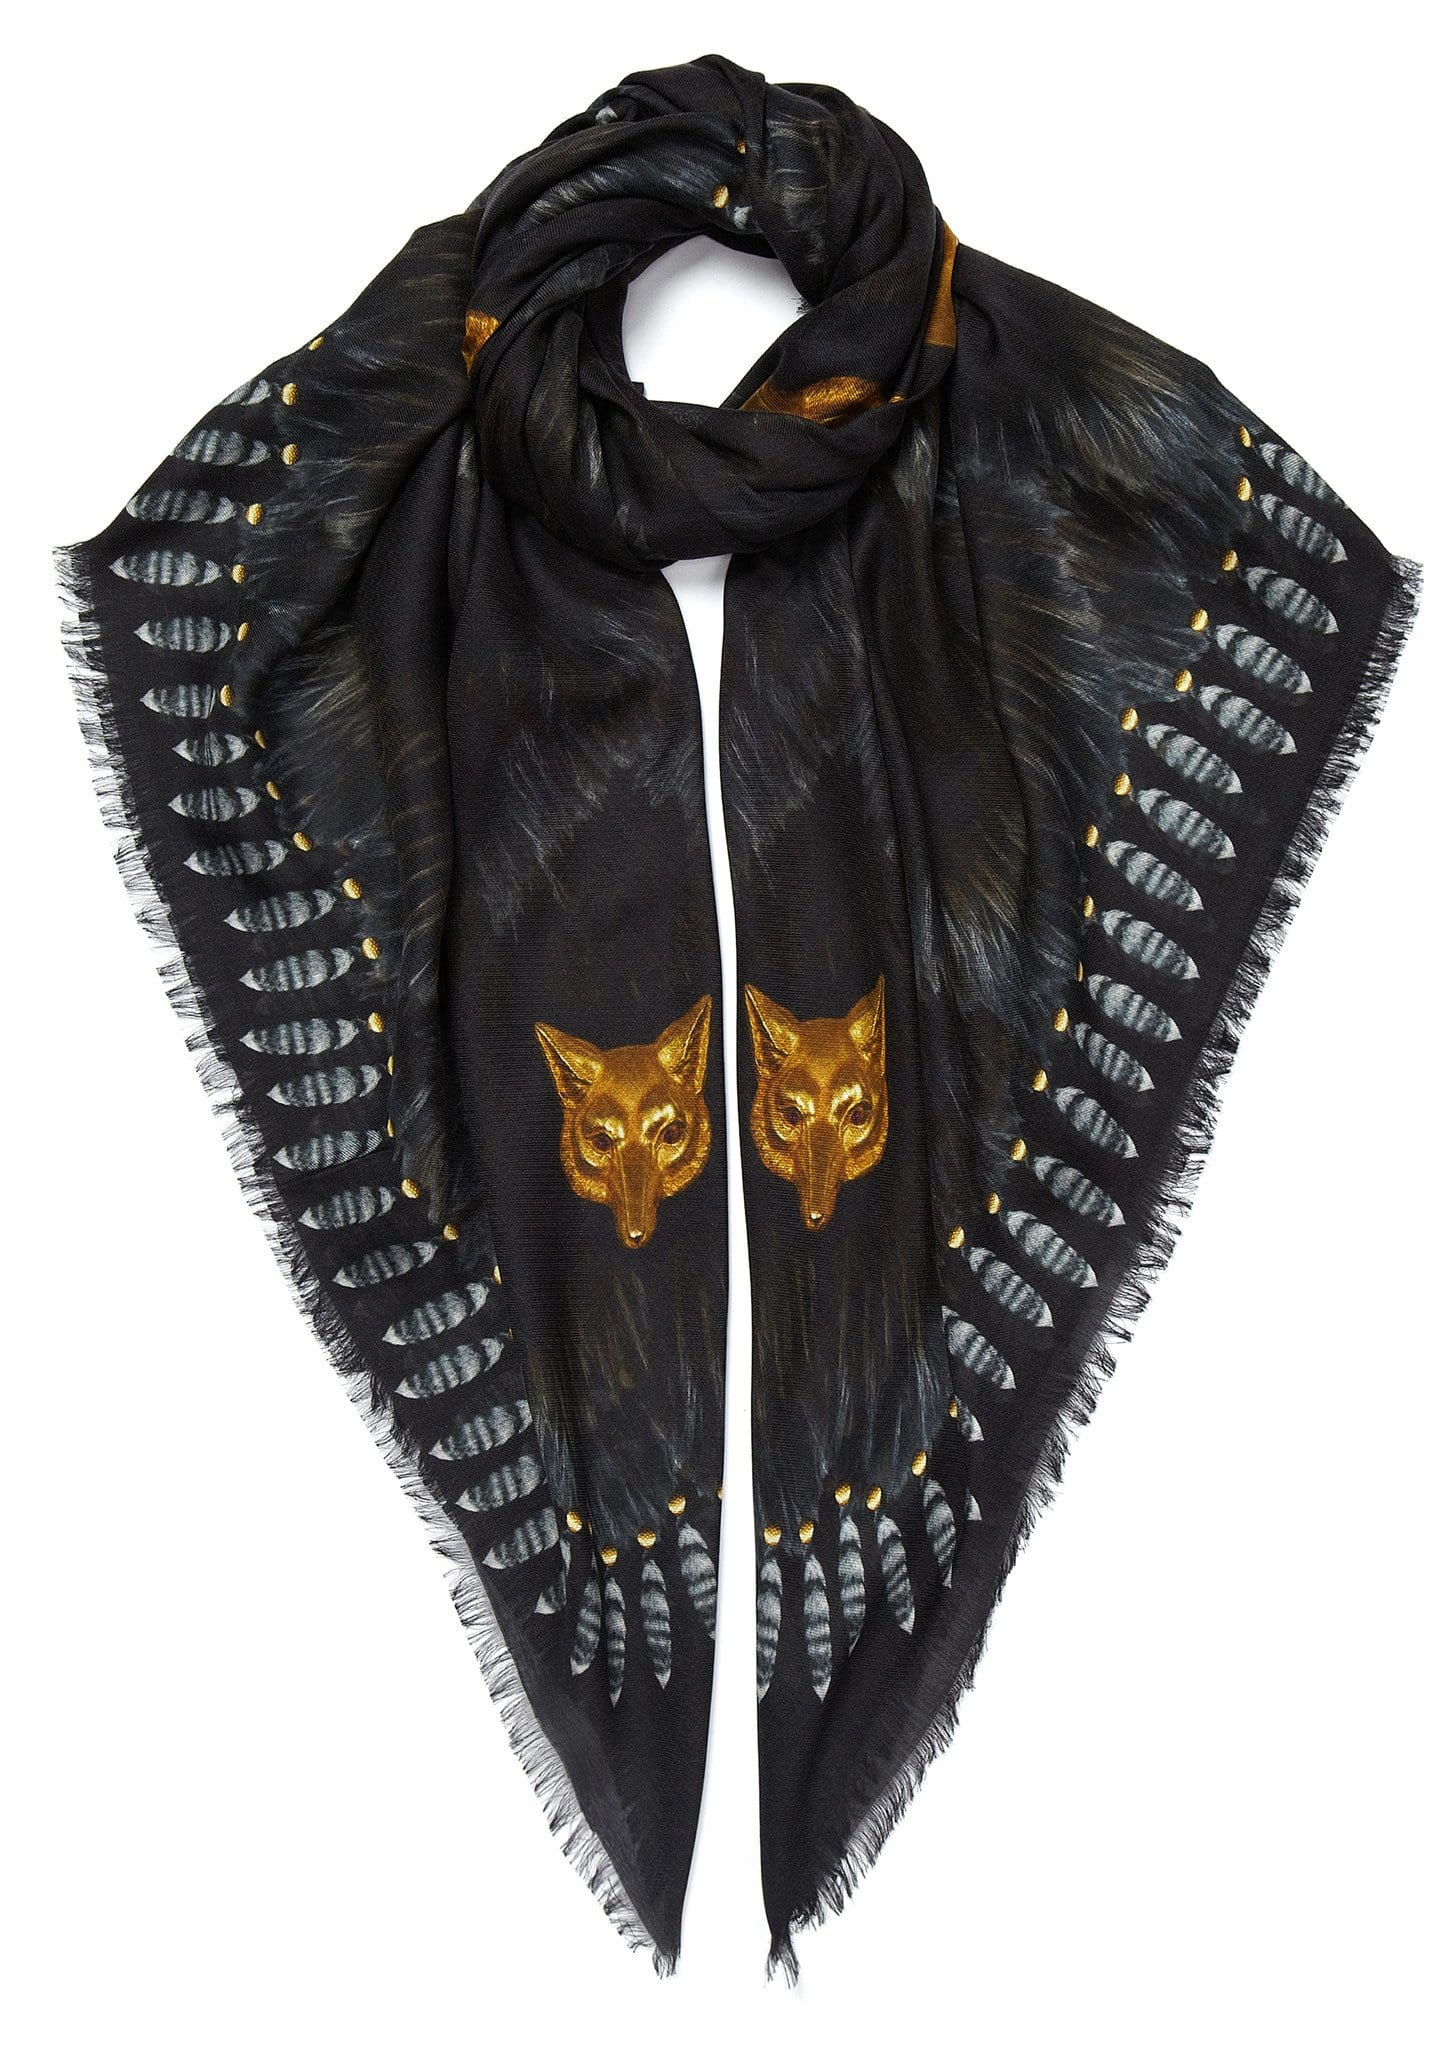 Fur and wolves' masks scarf black - bestseller